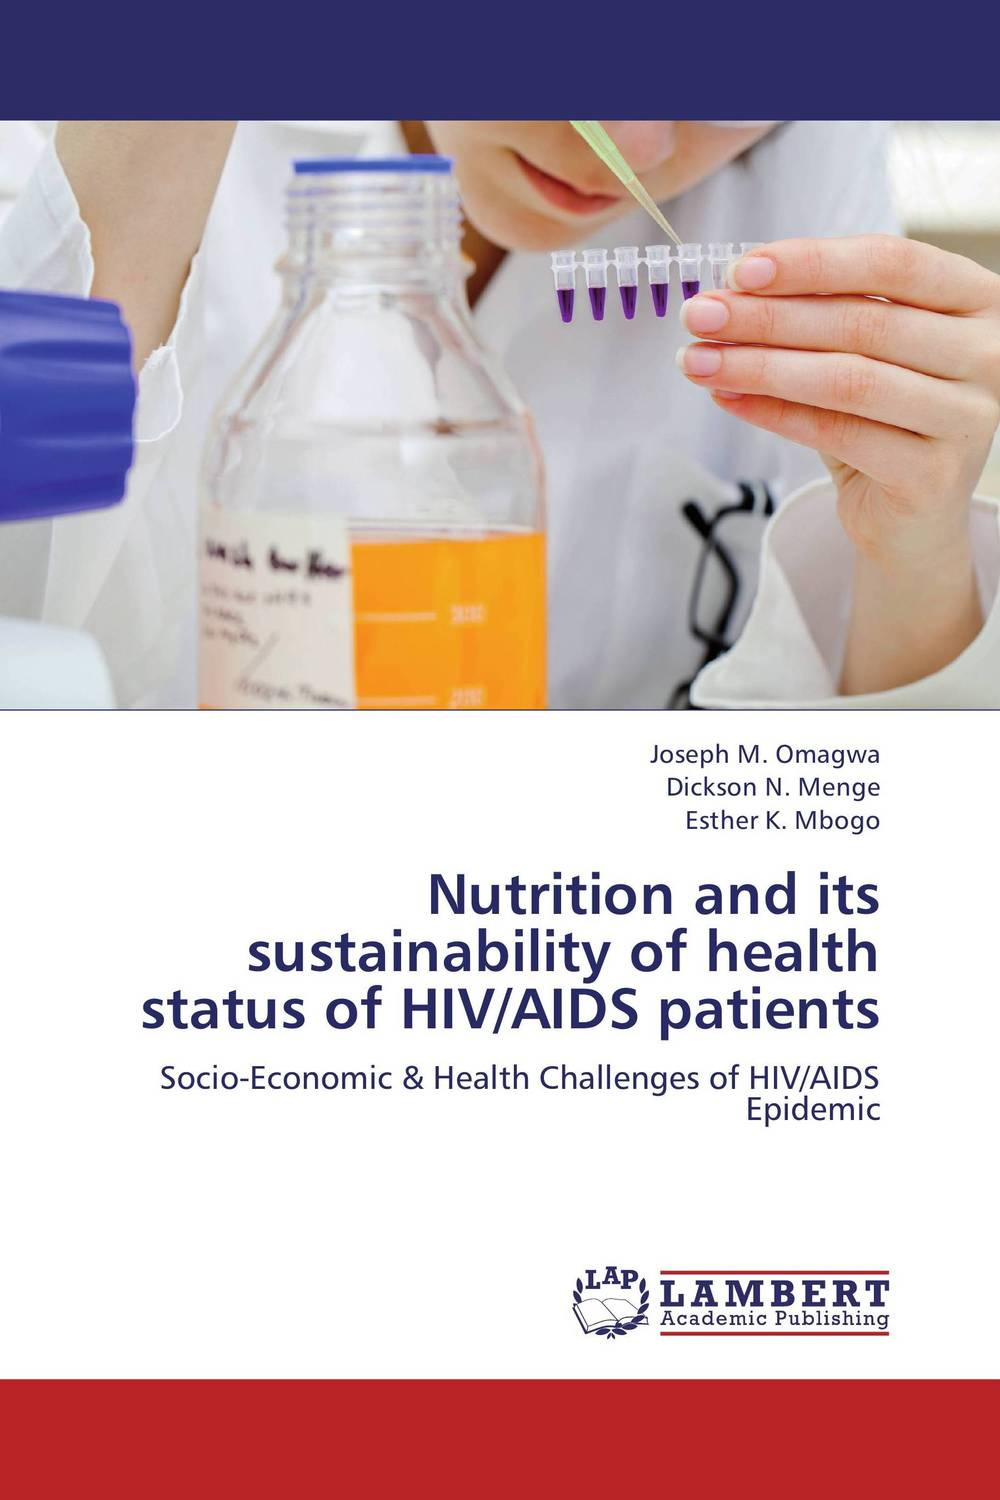 Nutrition and its sustainability of health status of HIV/AIDS patients hiv prevalence in senegal associated with the sugar daddy phenomenon